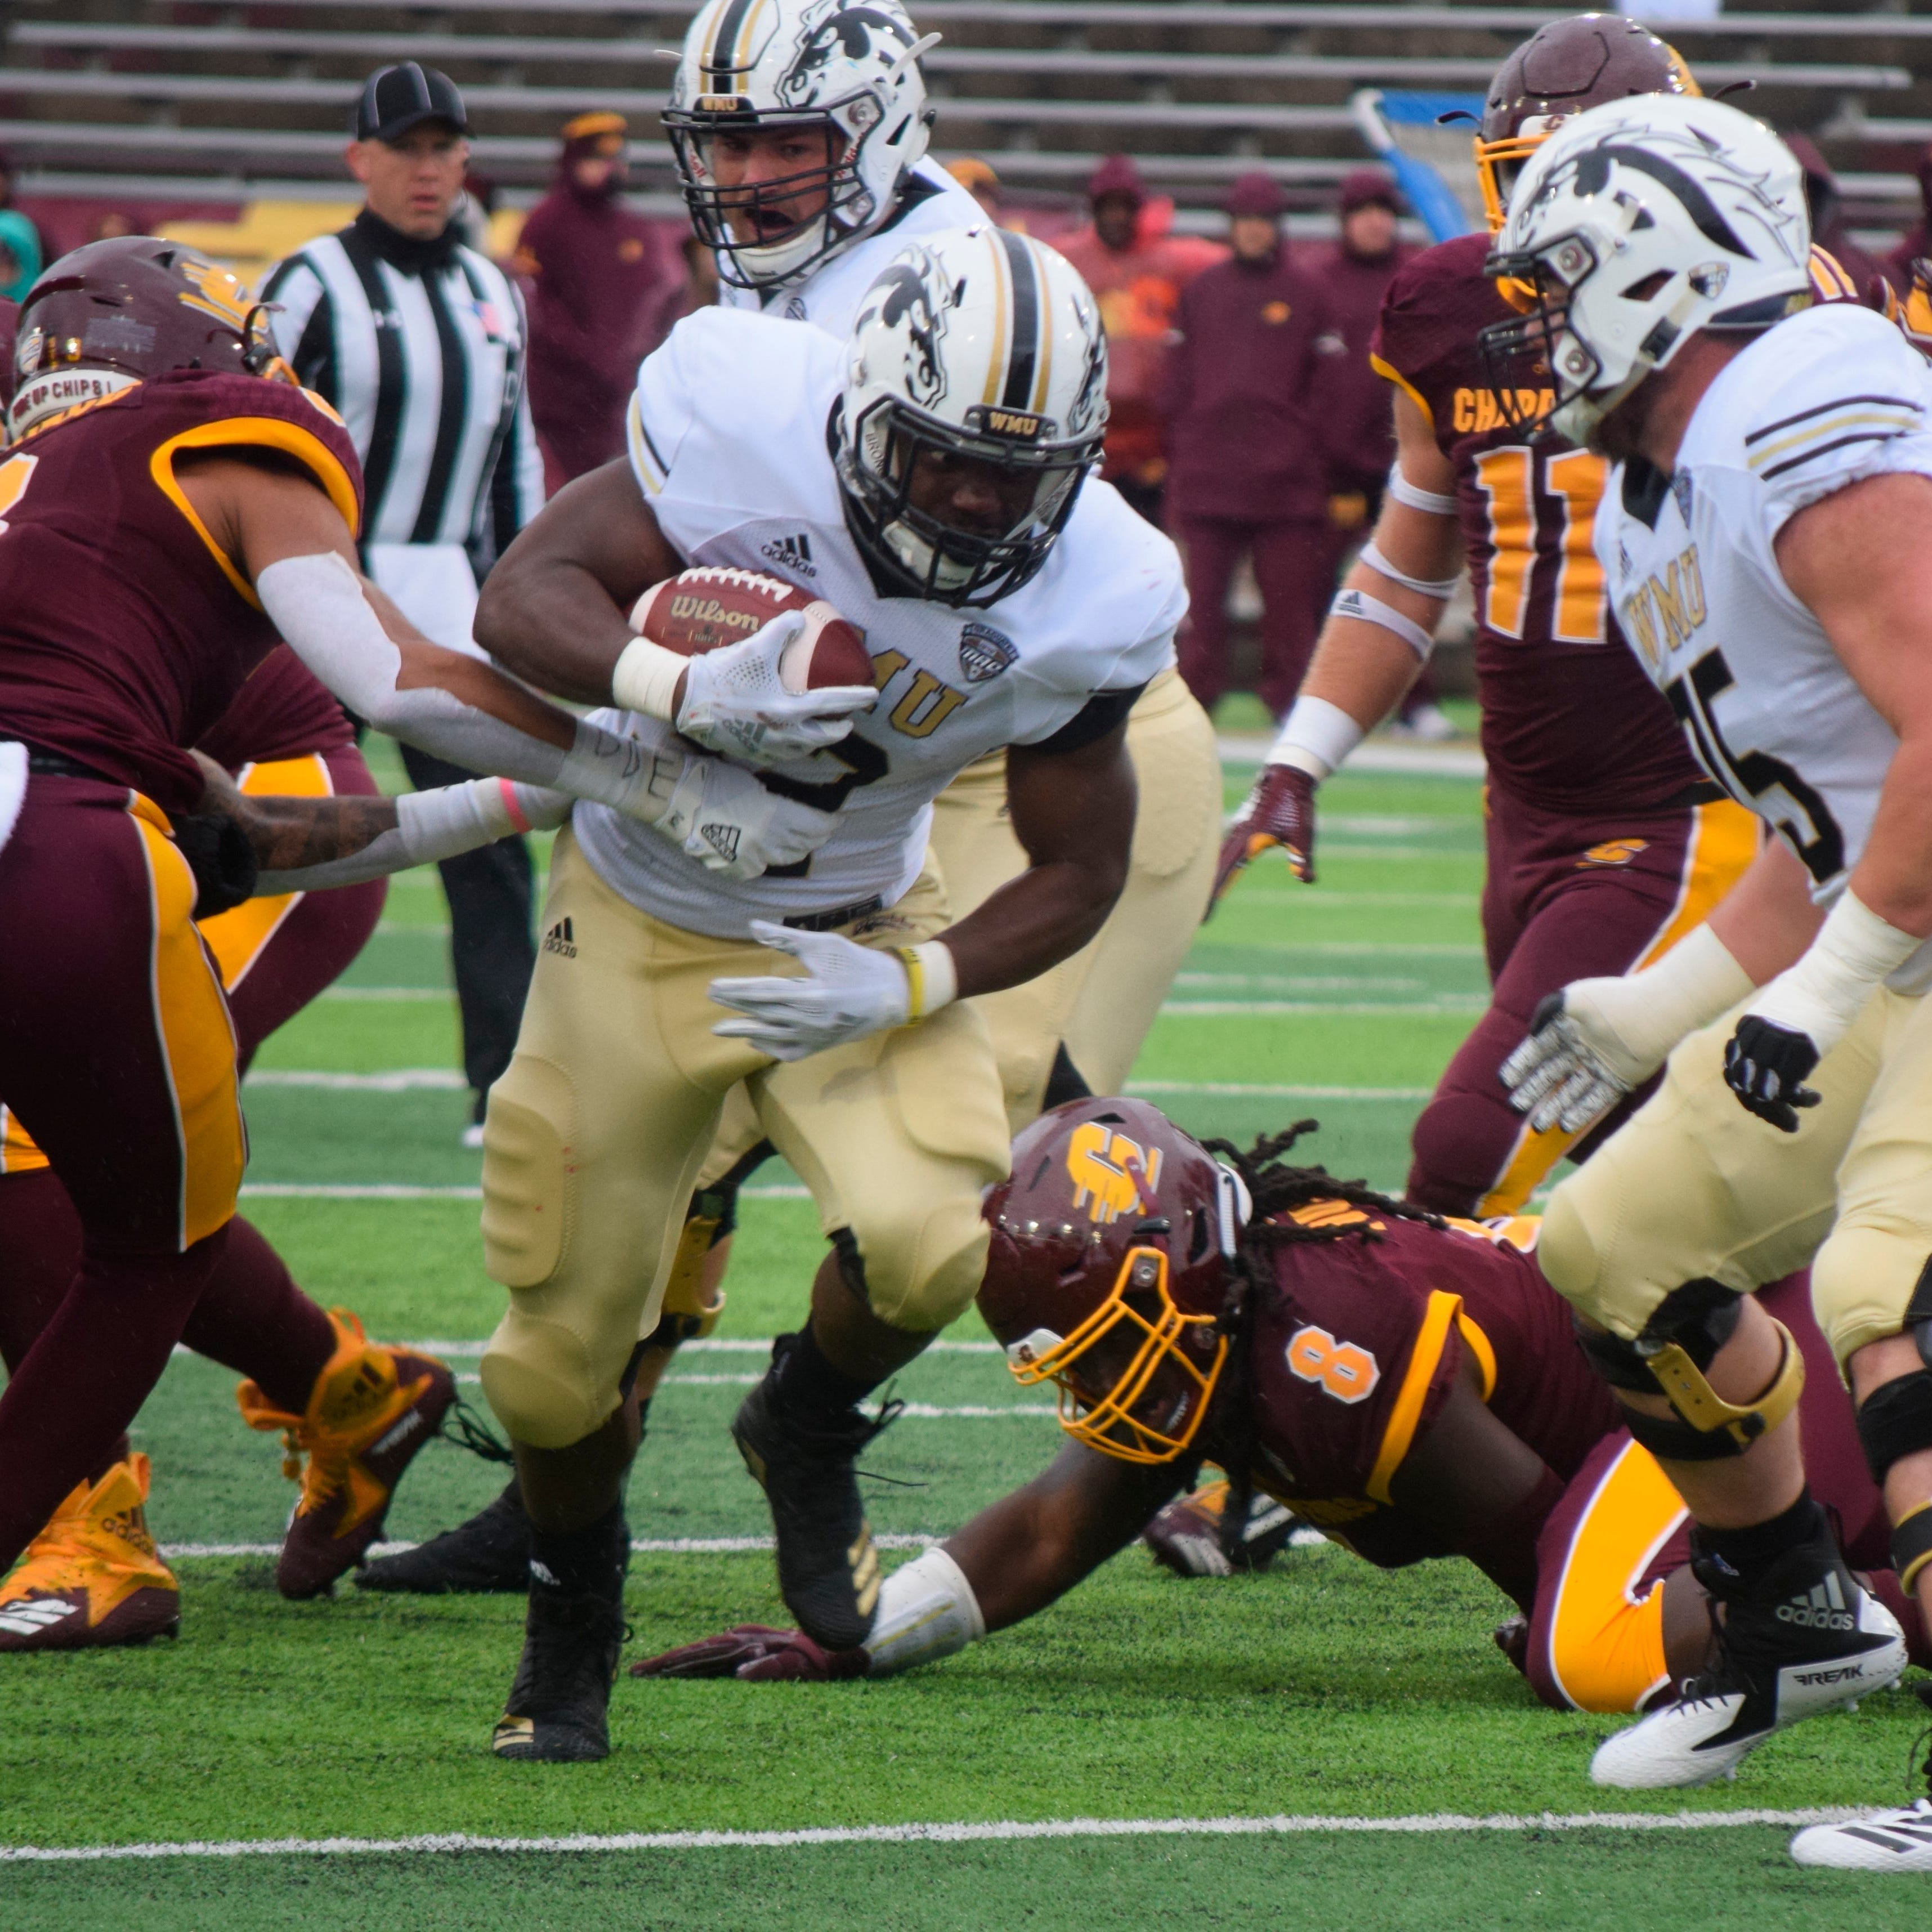 In the other in-state rivalry, Western Michigan beats Central Michigan